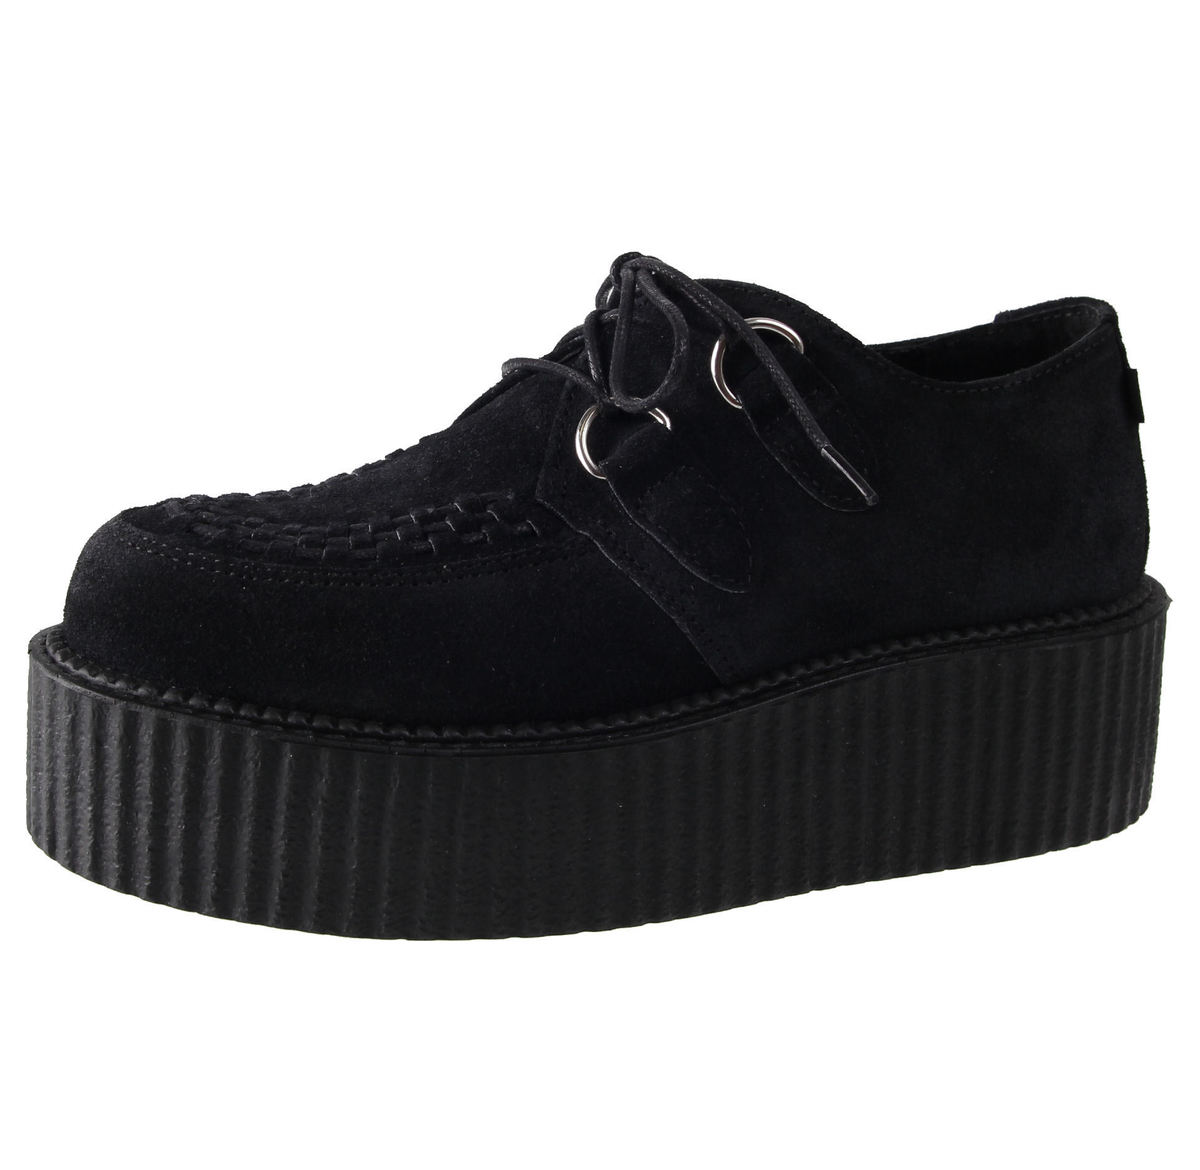 boty ALTERCORE - Creepers - Ered - Black - ALT007